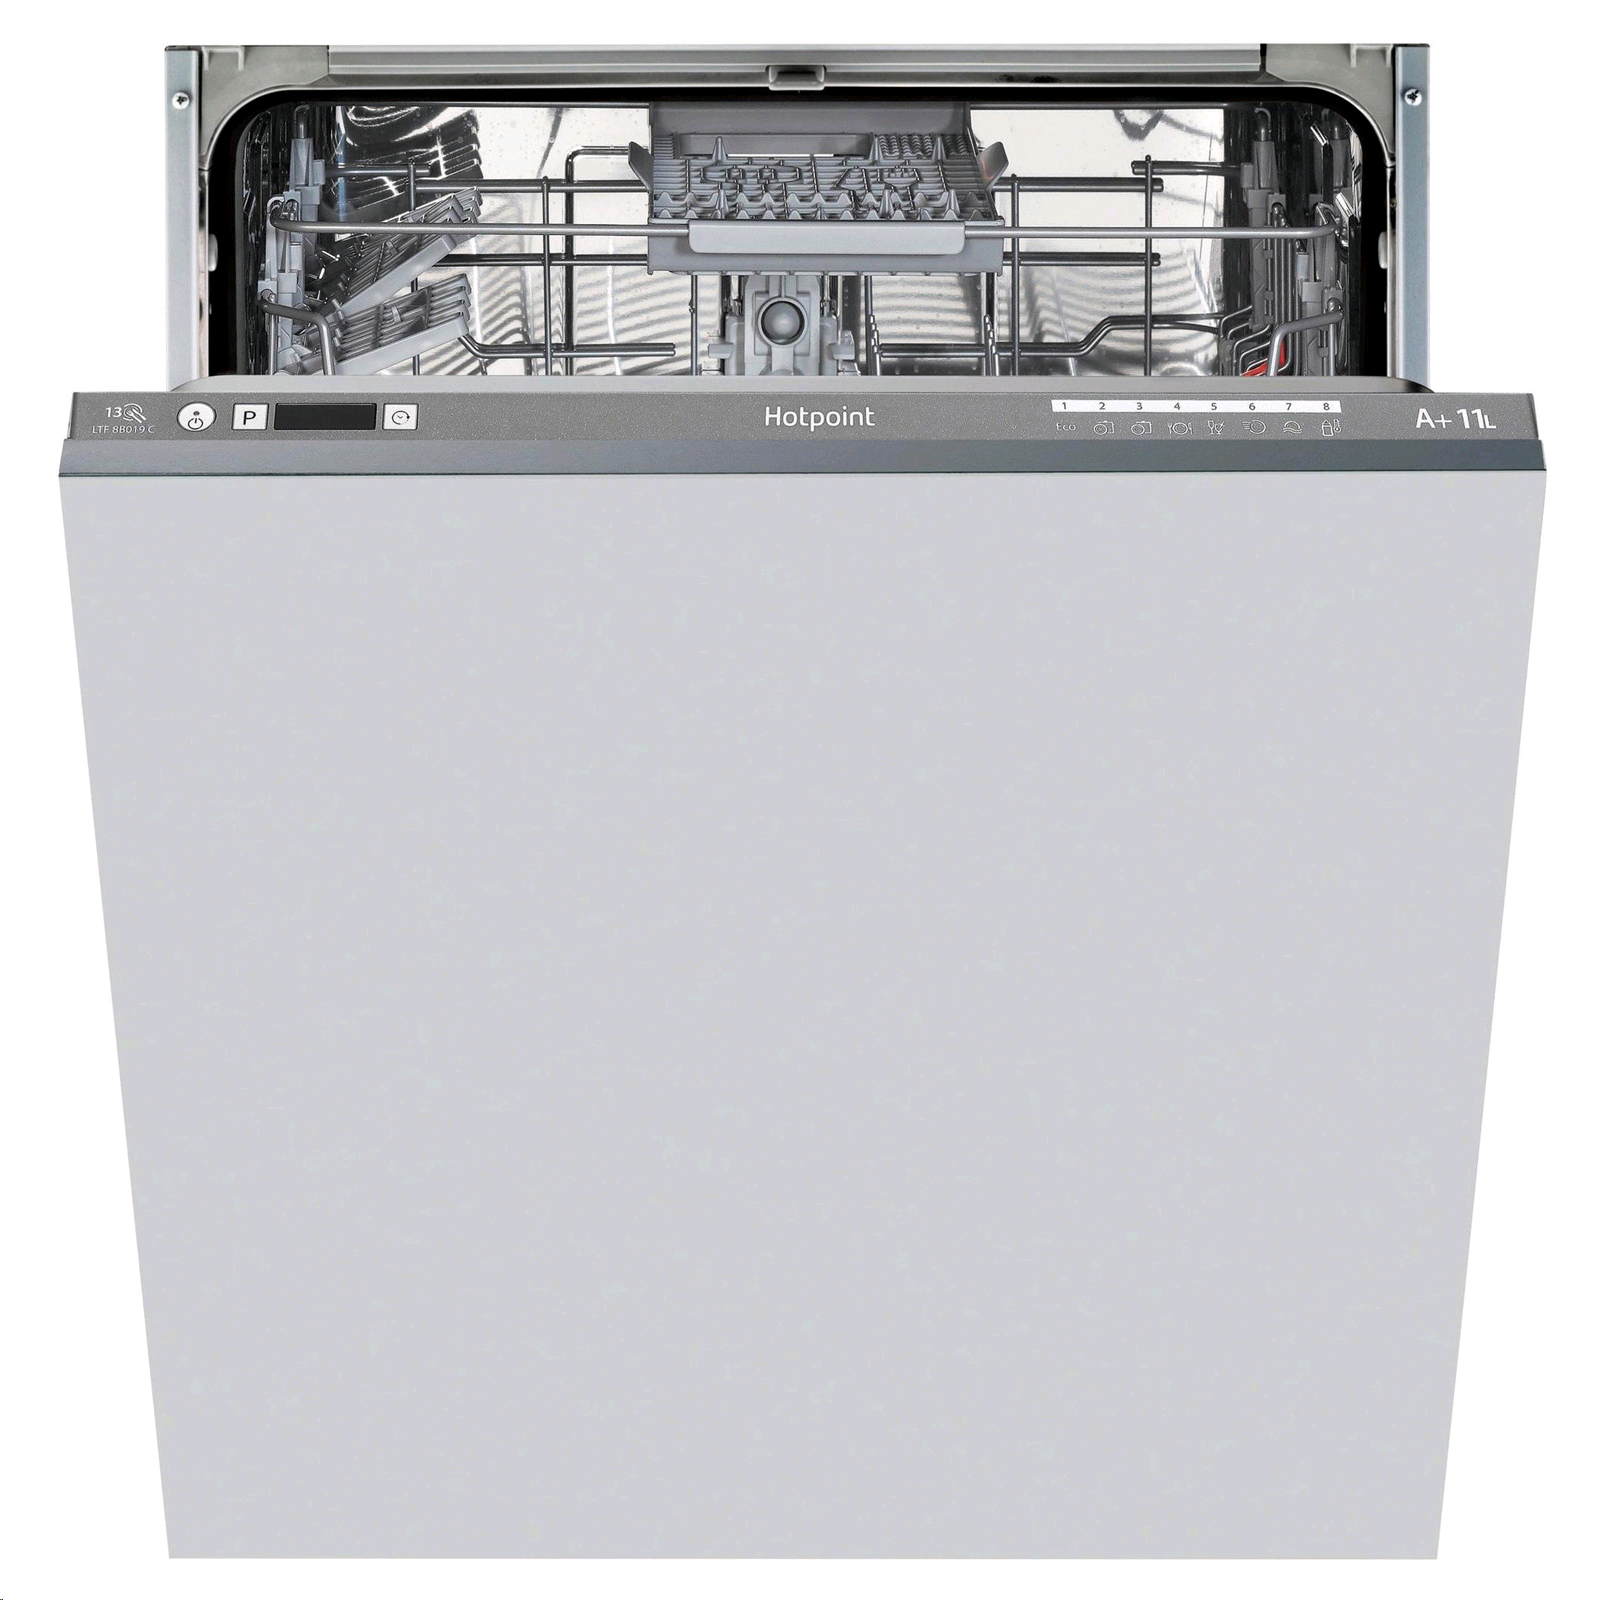 Hotpoint Fully Integrated Dishwasher 13 Place Settings